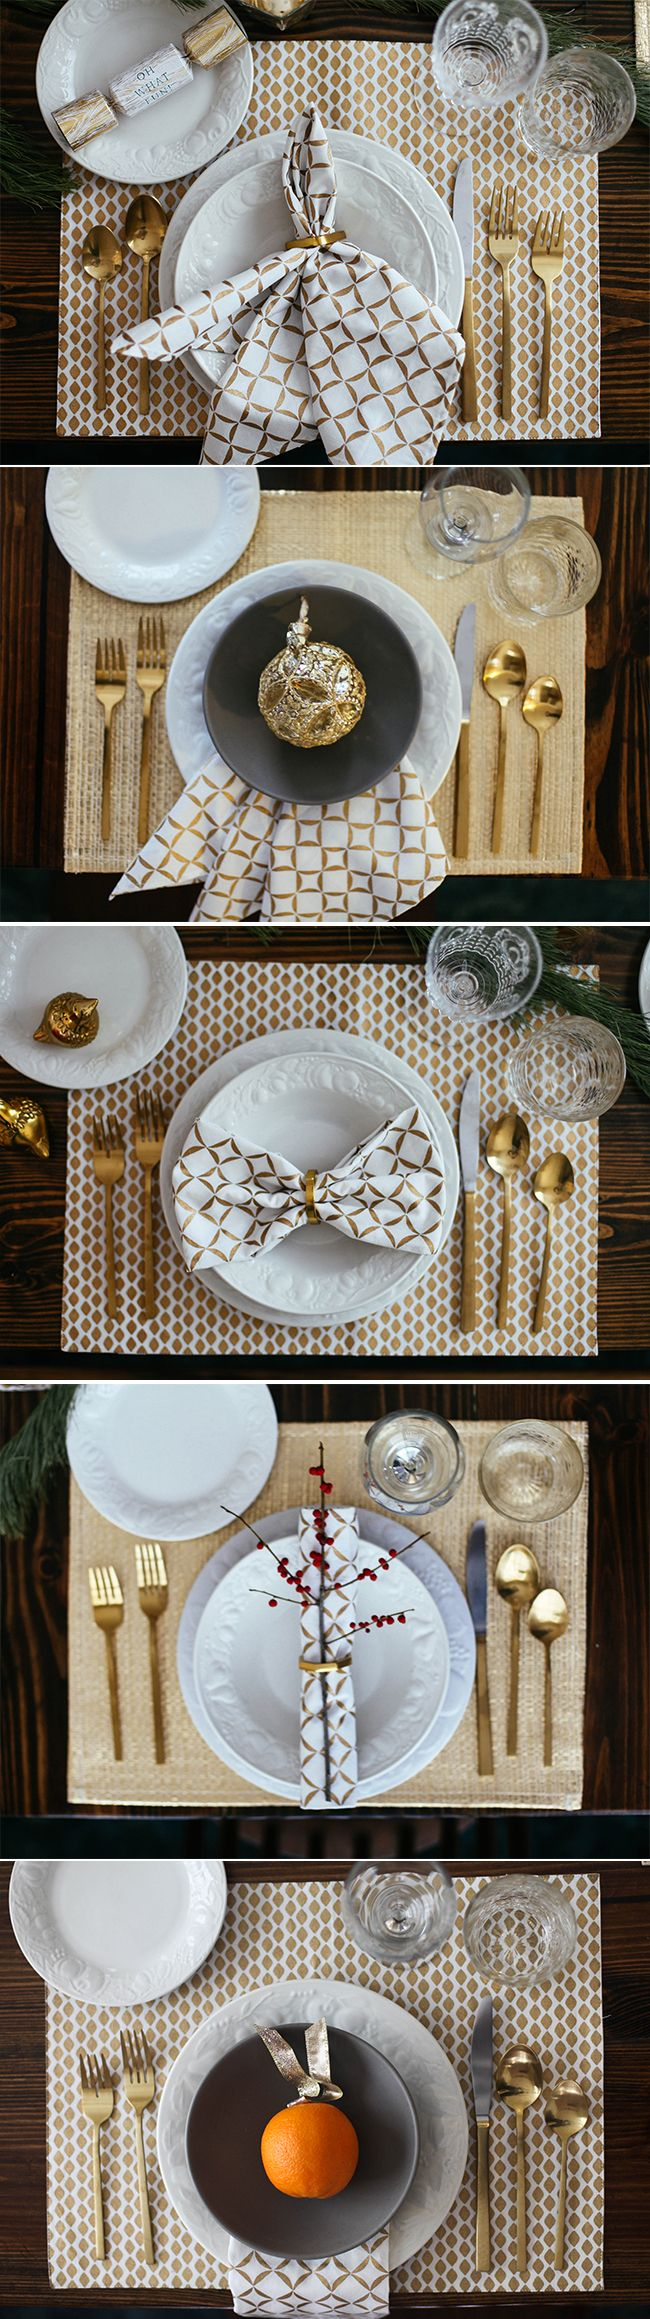 In Honor Of Design | Christmas and New Year Table Setting Ideas | In Honor Of Design